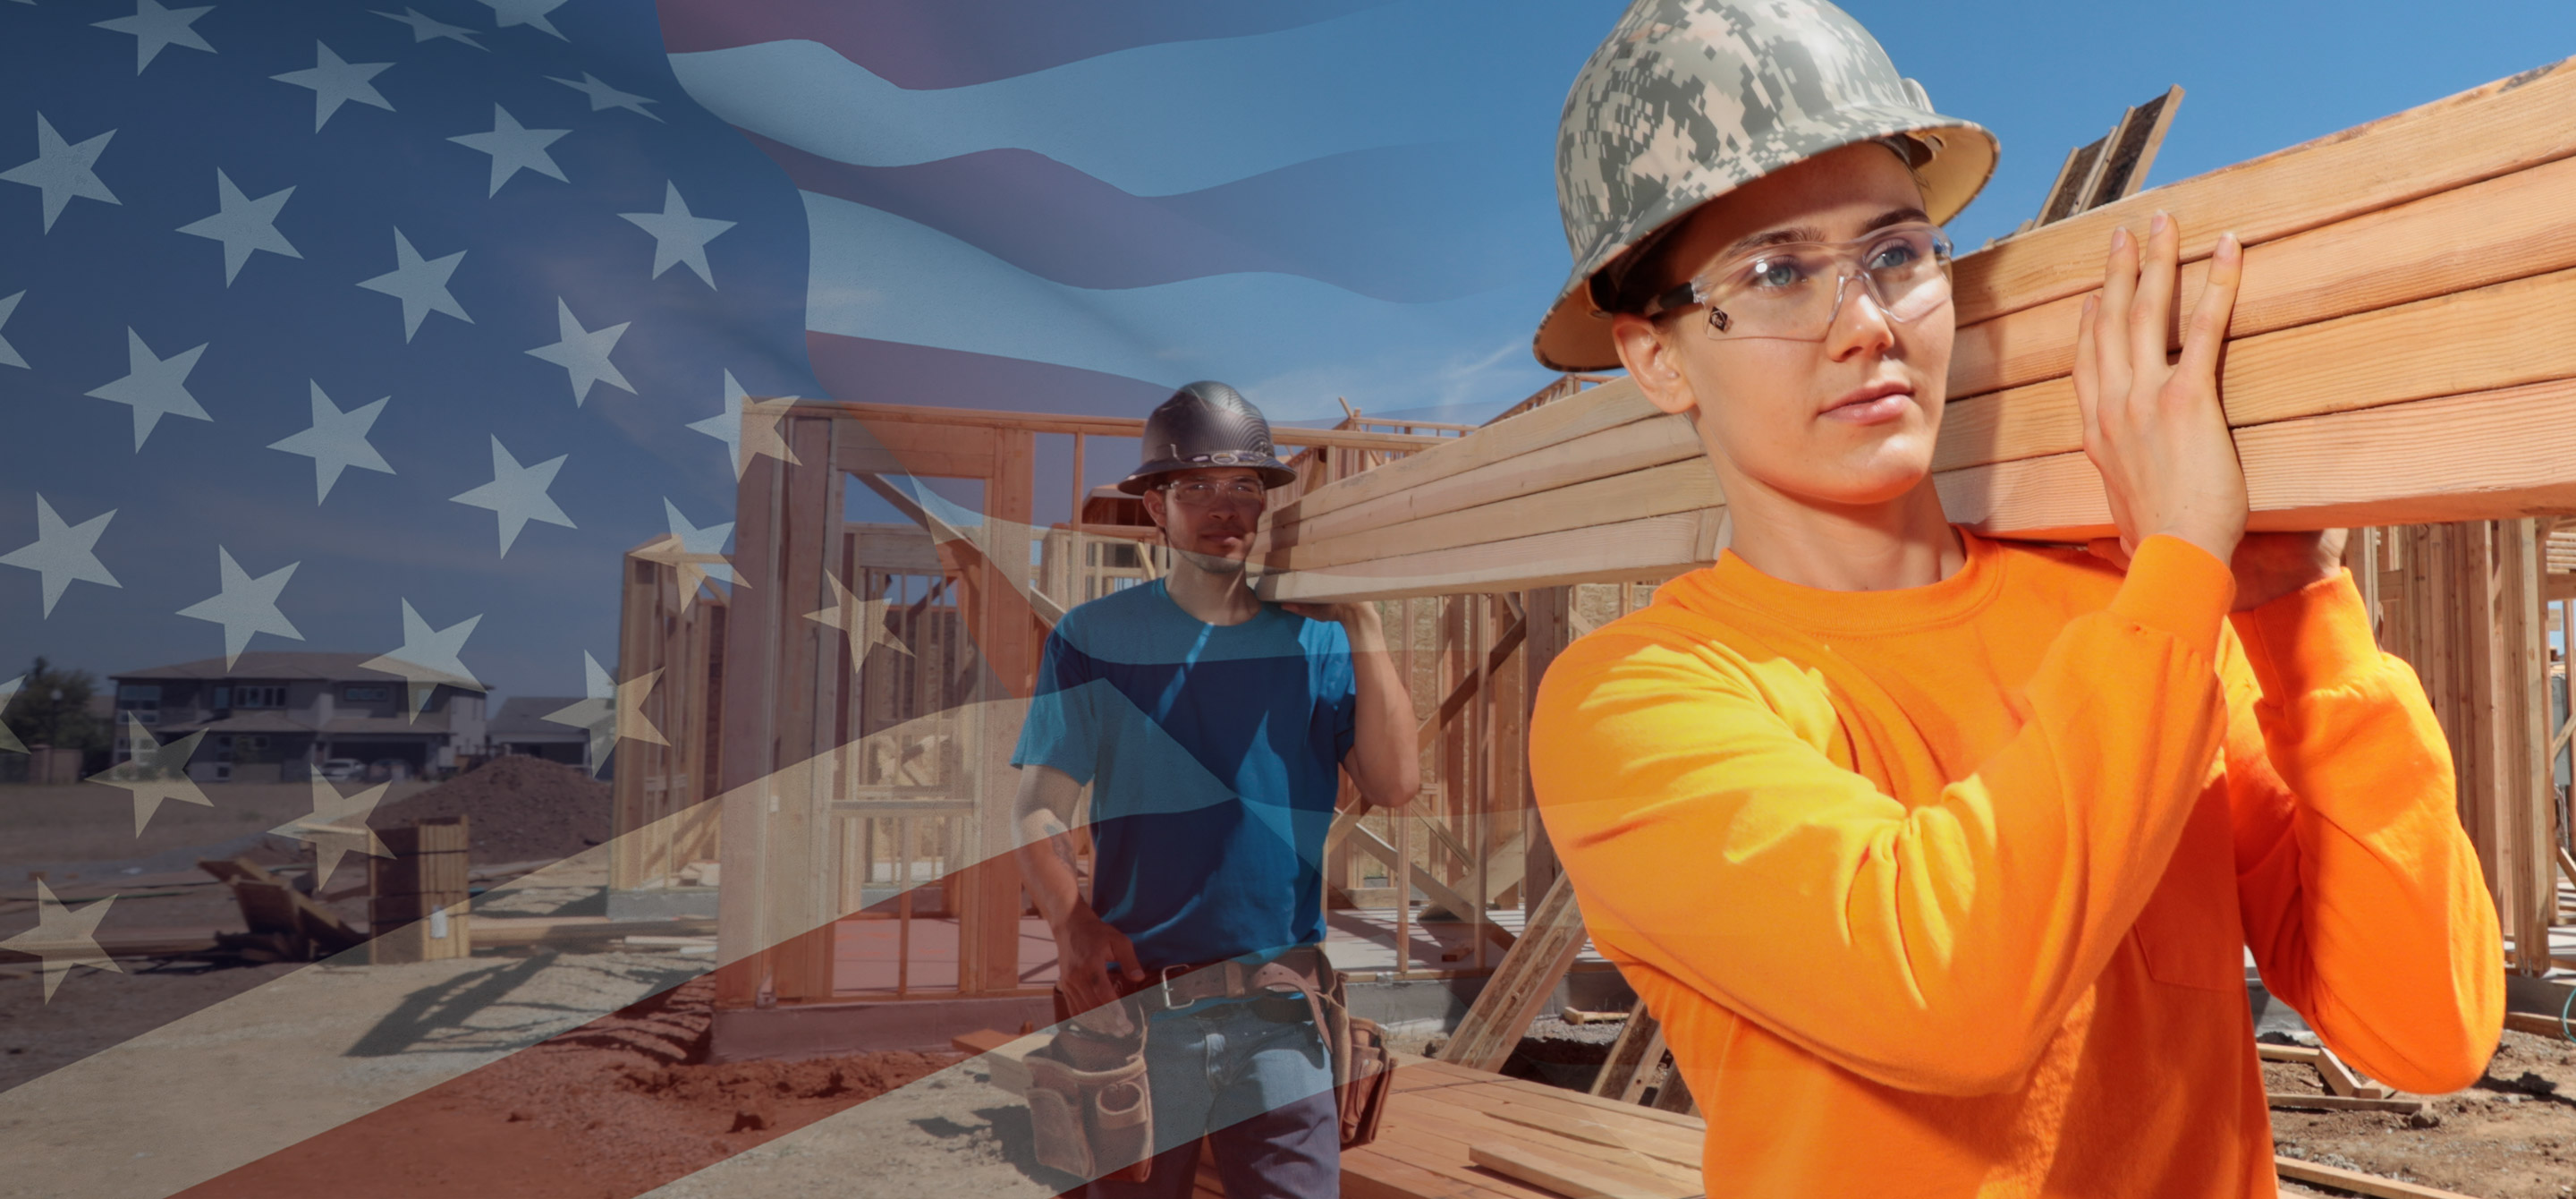 Skilled Trades Careers On the Rise